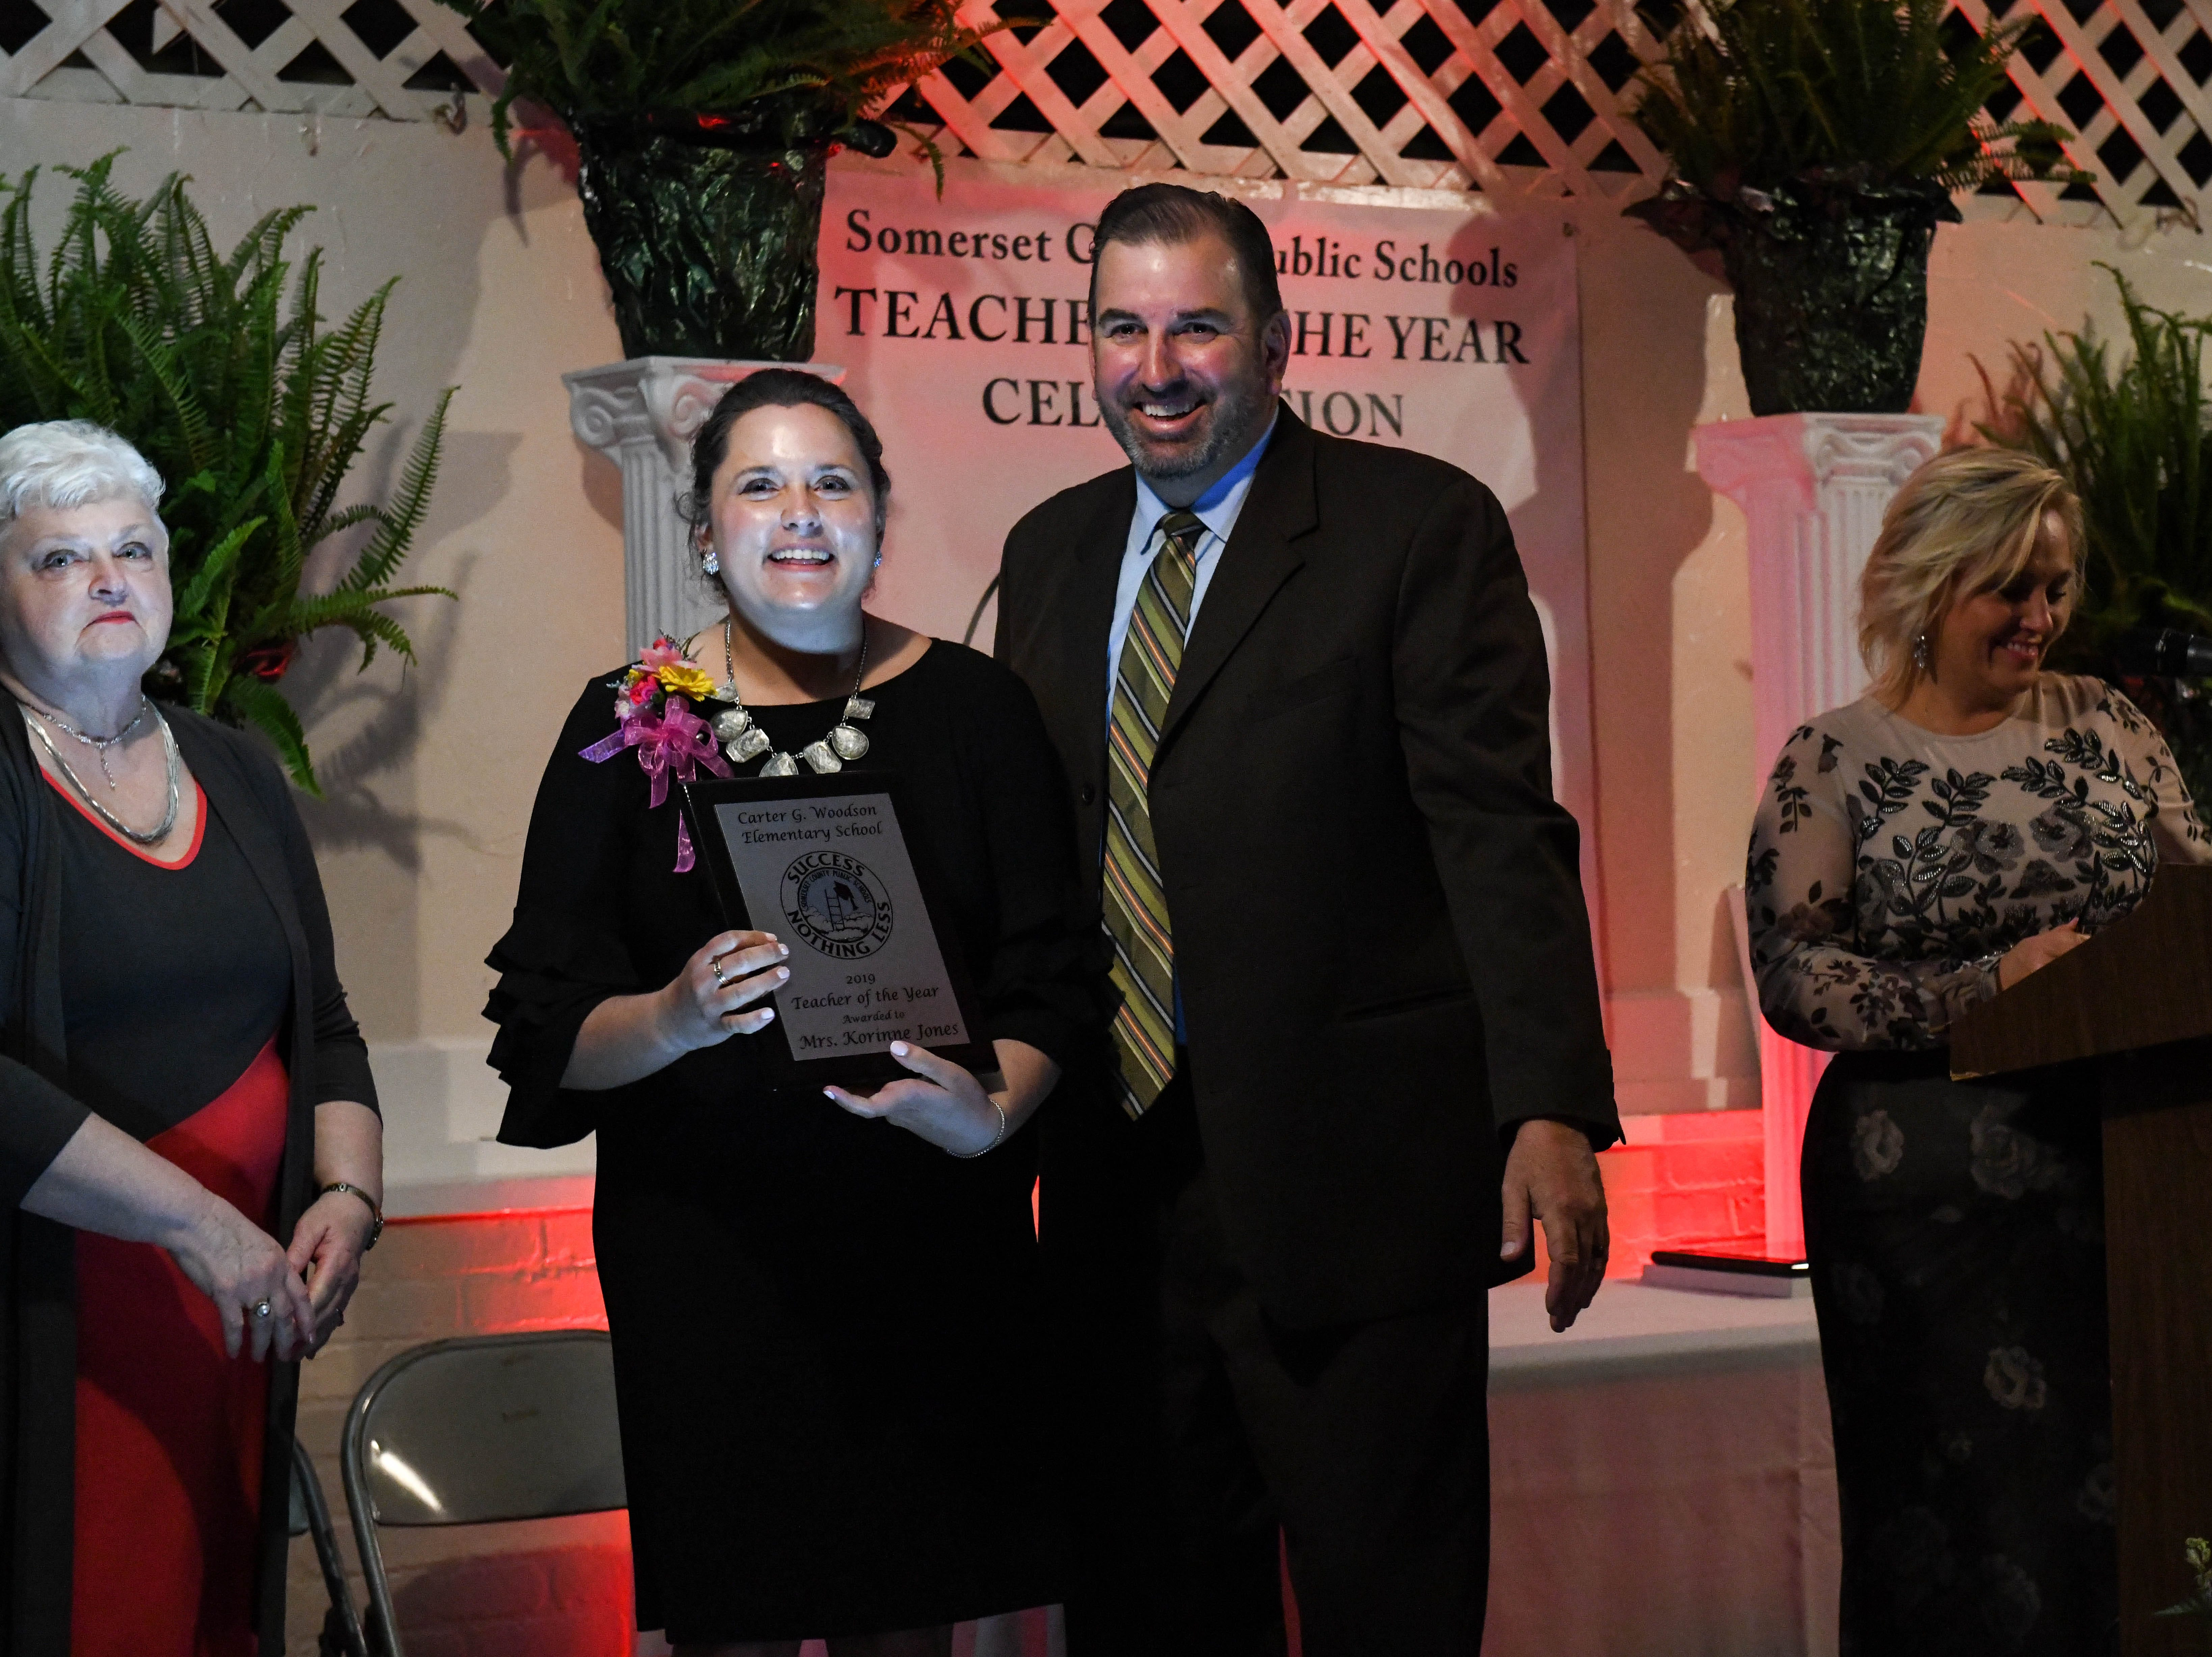 Woodson Elementary teacher Korinne Jones receives a plaque for her Somerset County teacher of the year nominee at the banquet on Friday, April 5, 2019.